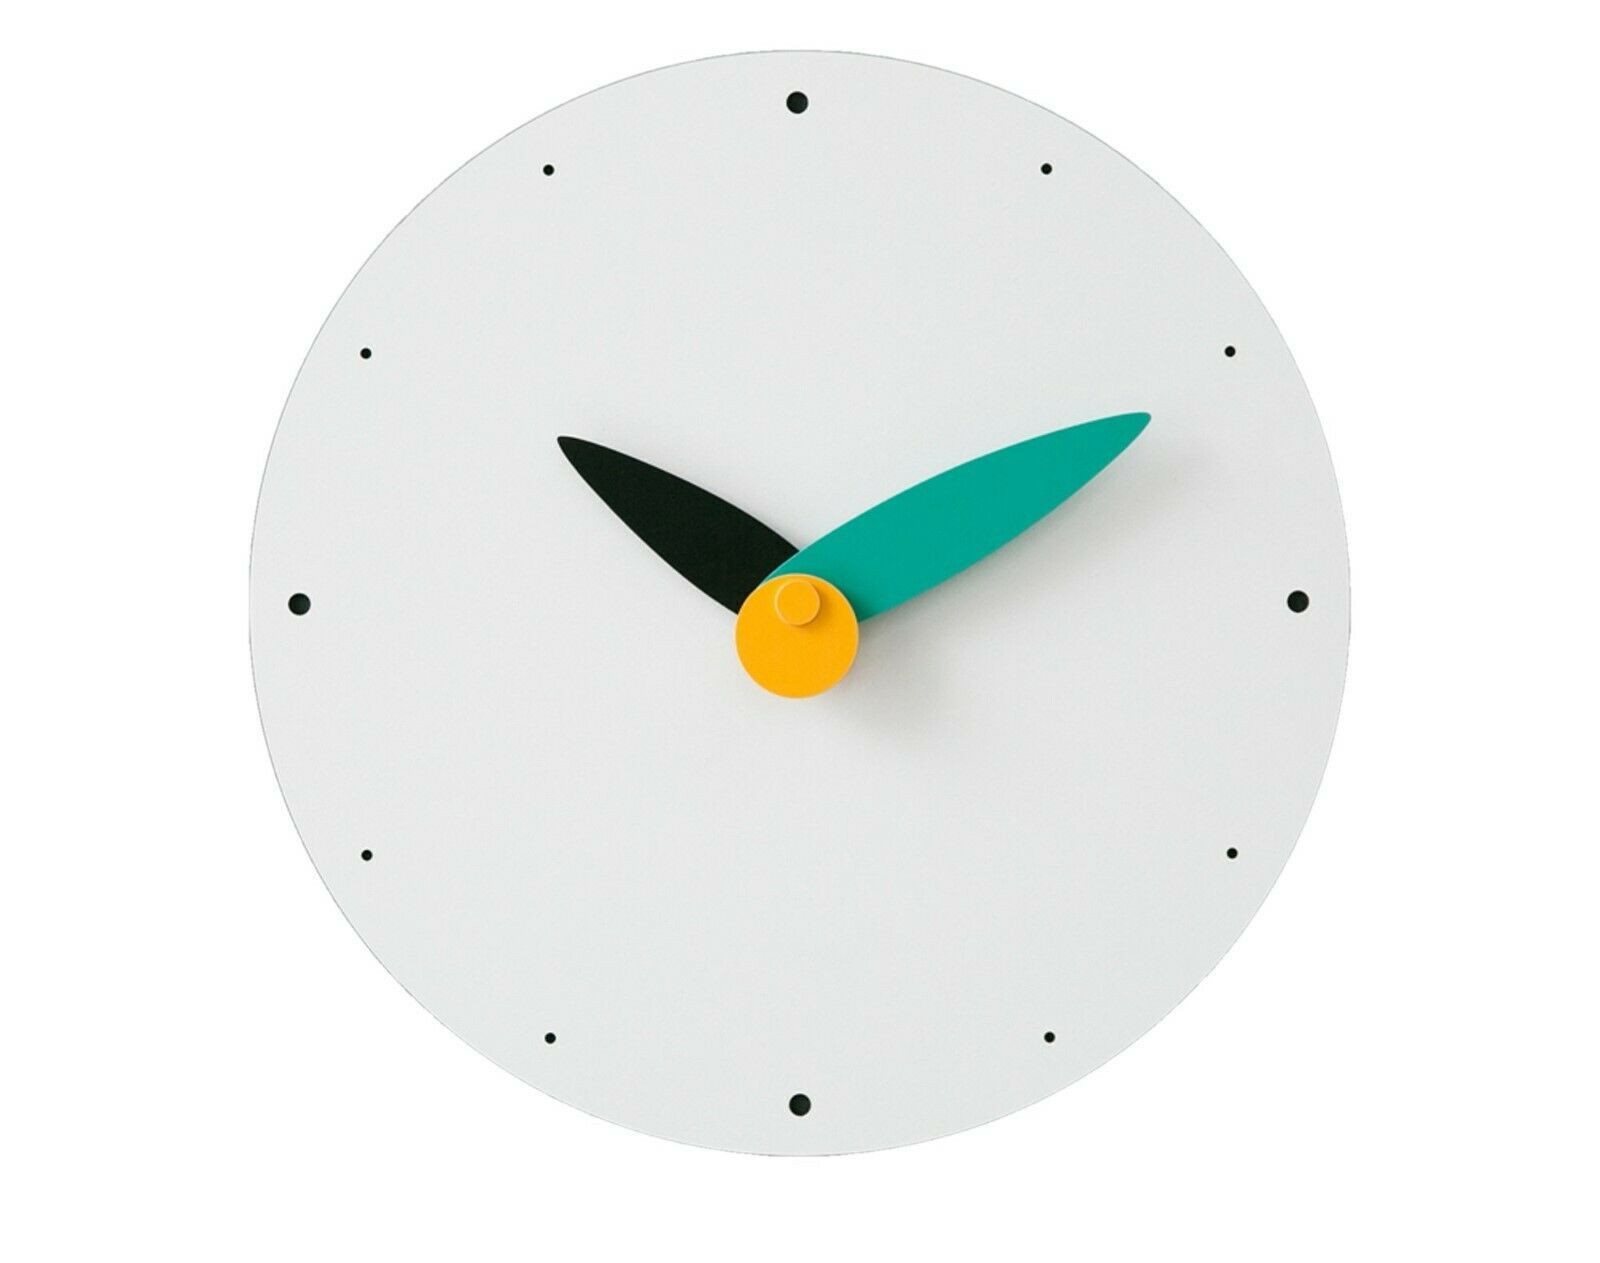 Moro Design Spread the Wings Wall Clock non Ticking Silent Modern Clock (Mint)